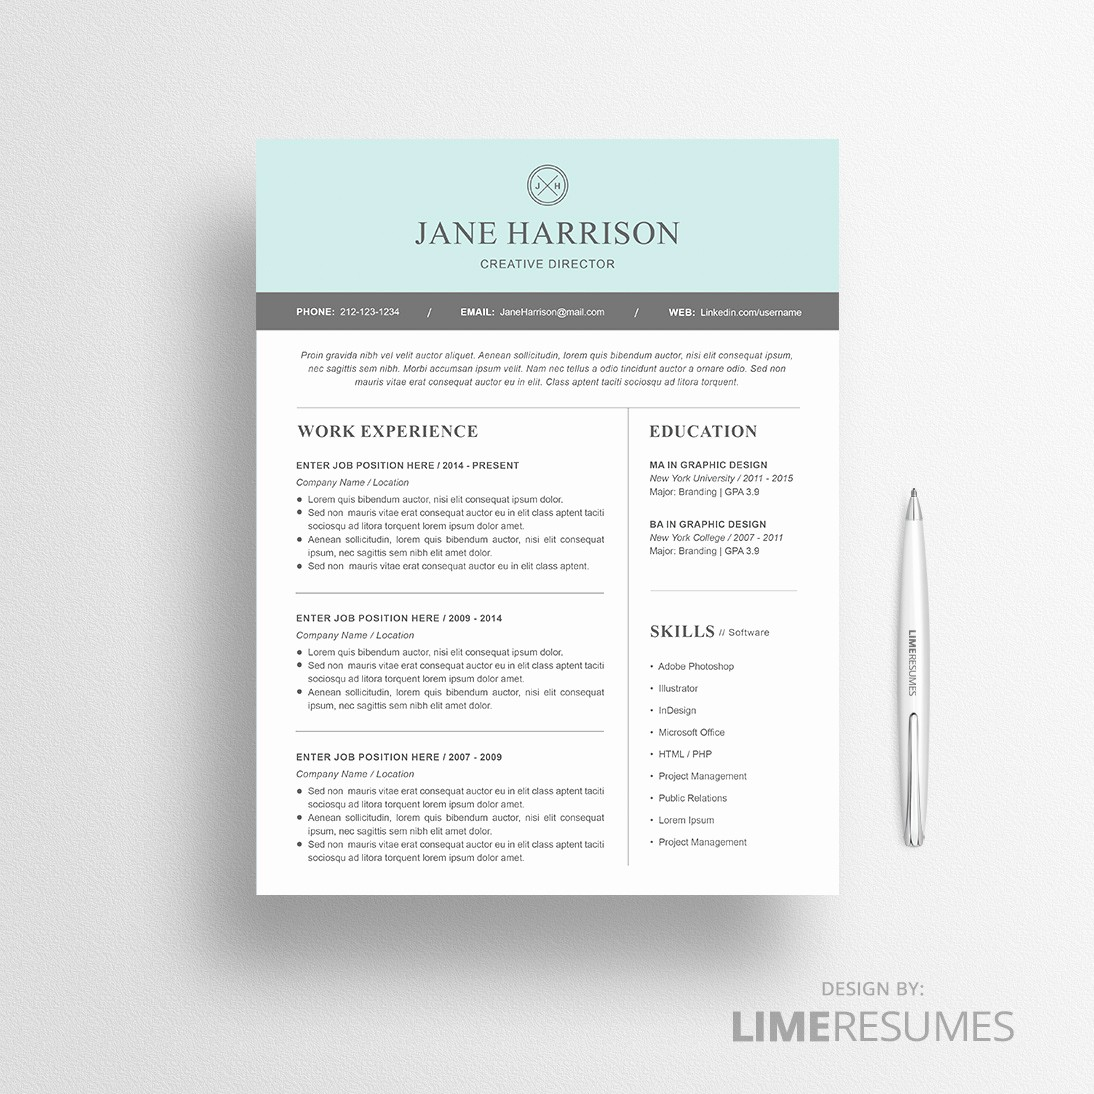 Ms Word Templates for Resumes Lovely Modern Resume Template for Microsoft Word Limeresumes